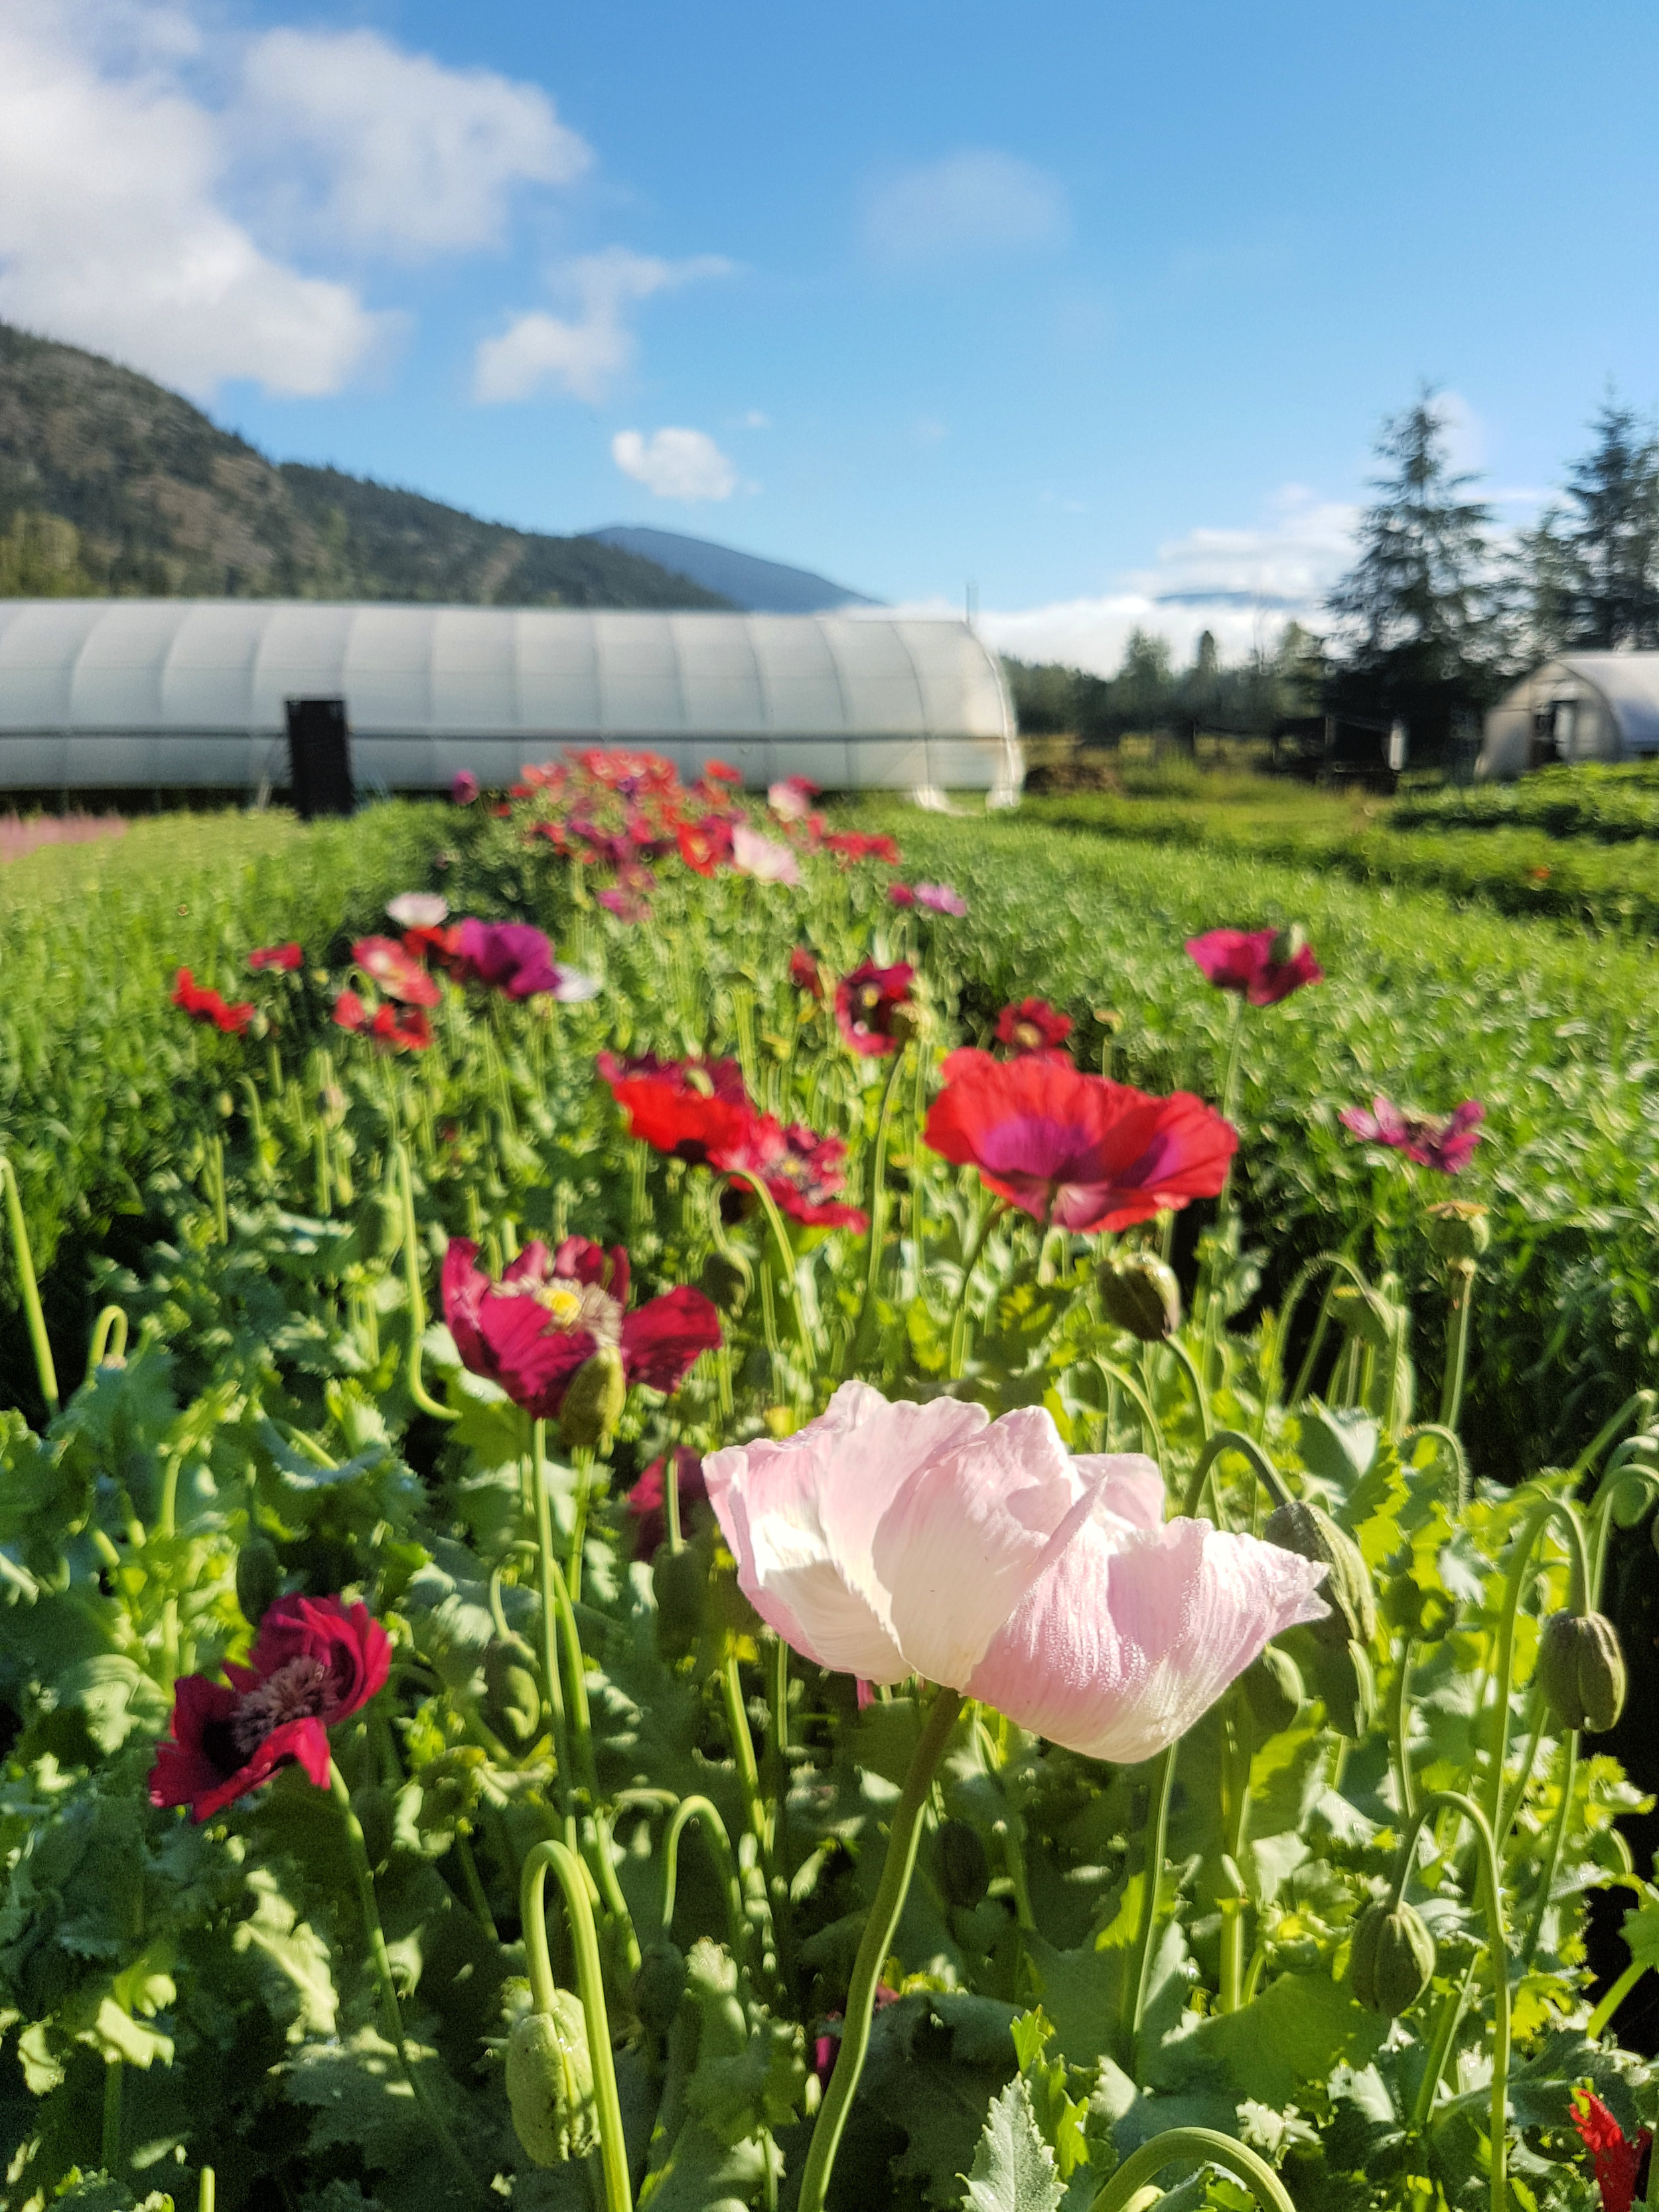 We just love having long rows of poppies blooming in our fields- and so do the bees! This flower attracts honey bees like nothing else, then later makes beautiful, large globe shaped pods.